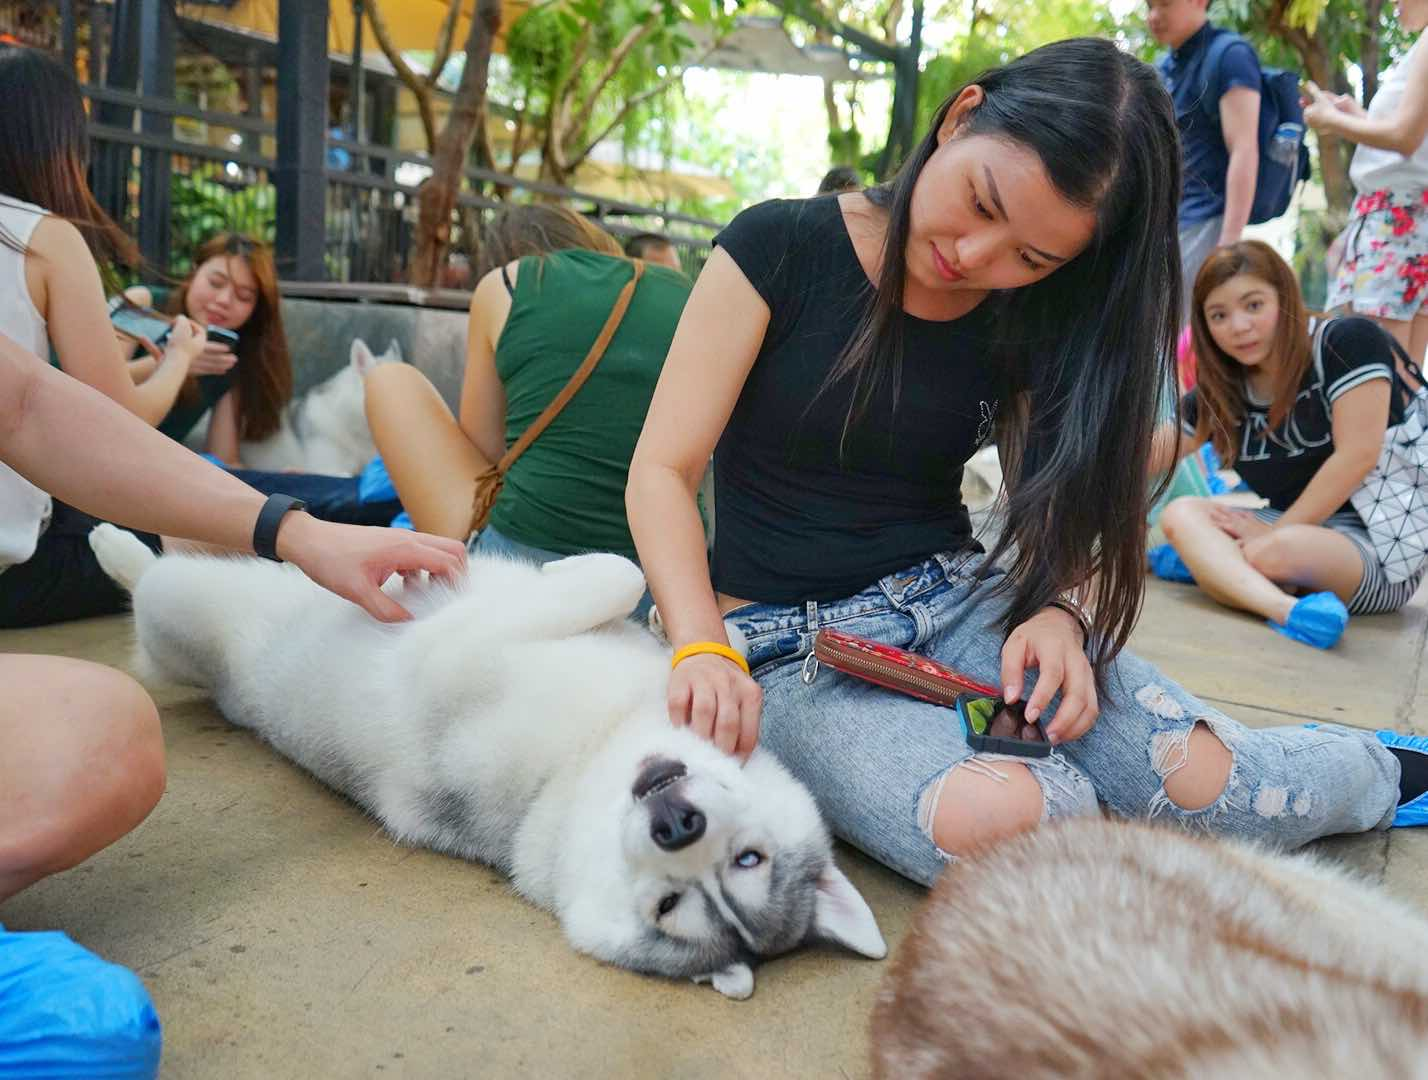 Massaging Husky At Neverland Siberian True Love Cafe, Bangkok - AspirantSG